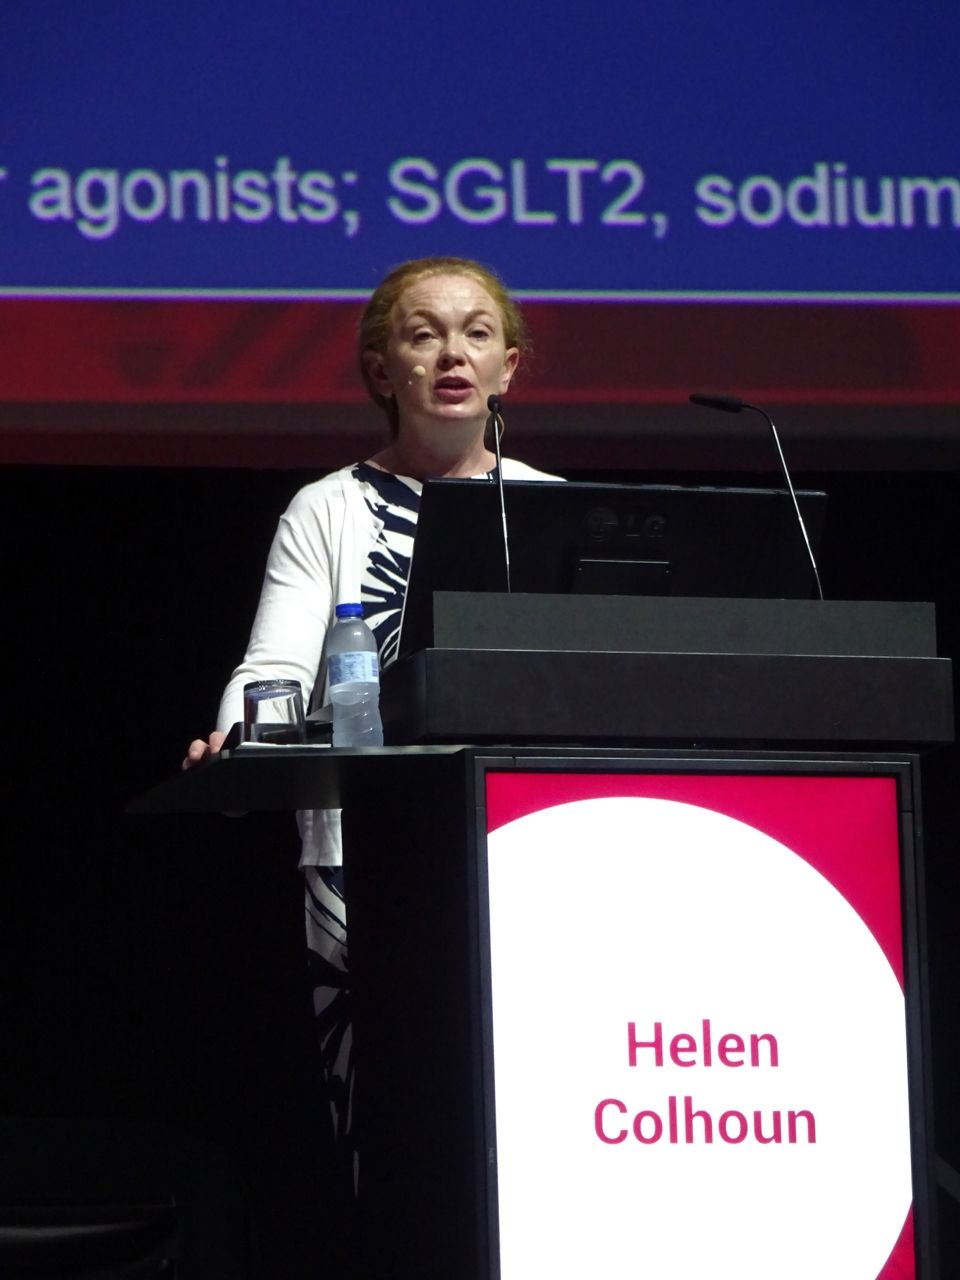 Dr. Helen Colhoun, University of Edinburgh